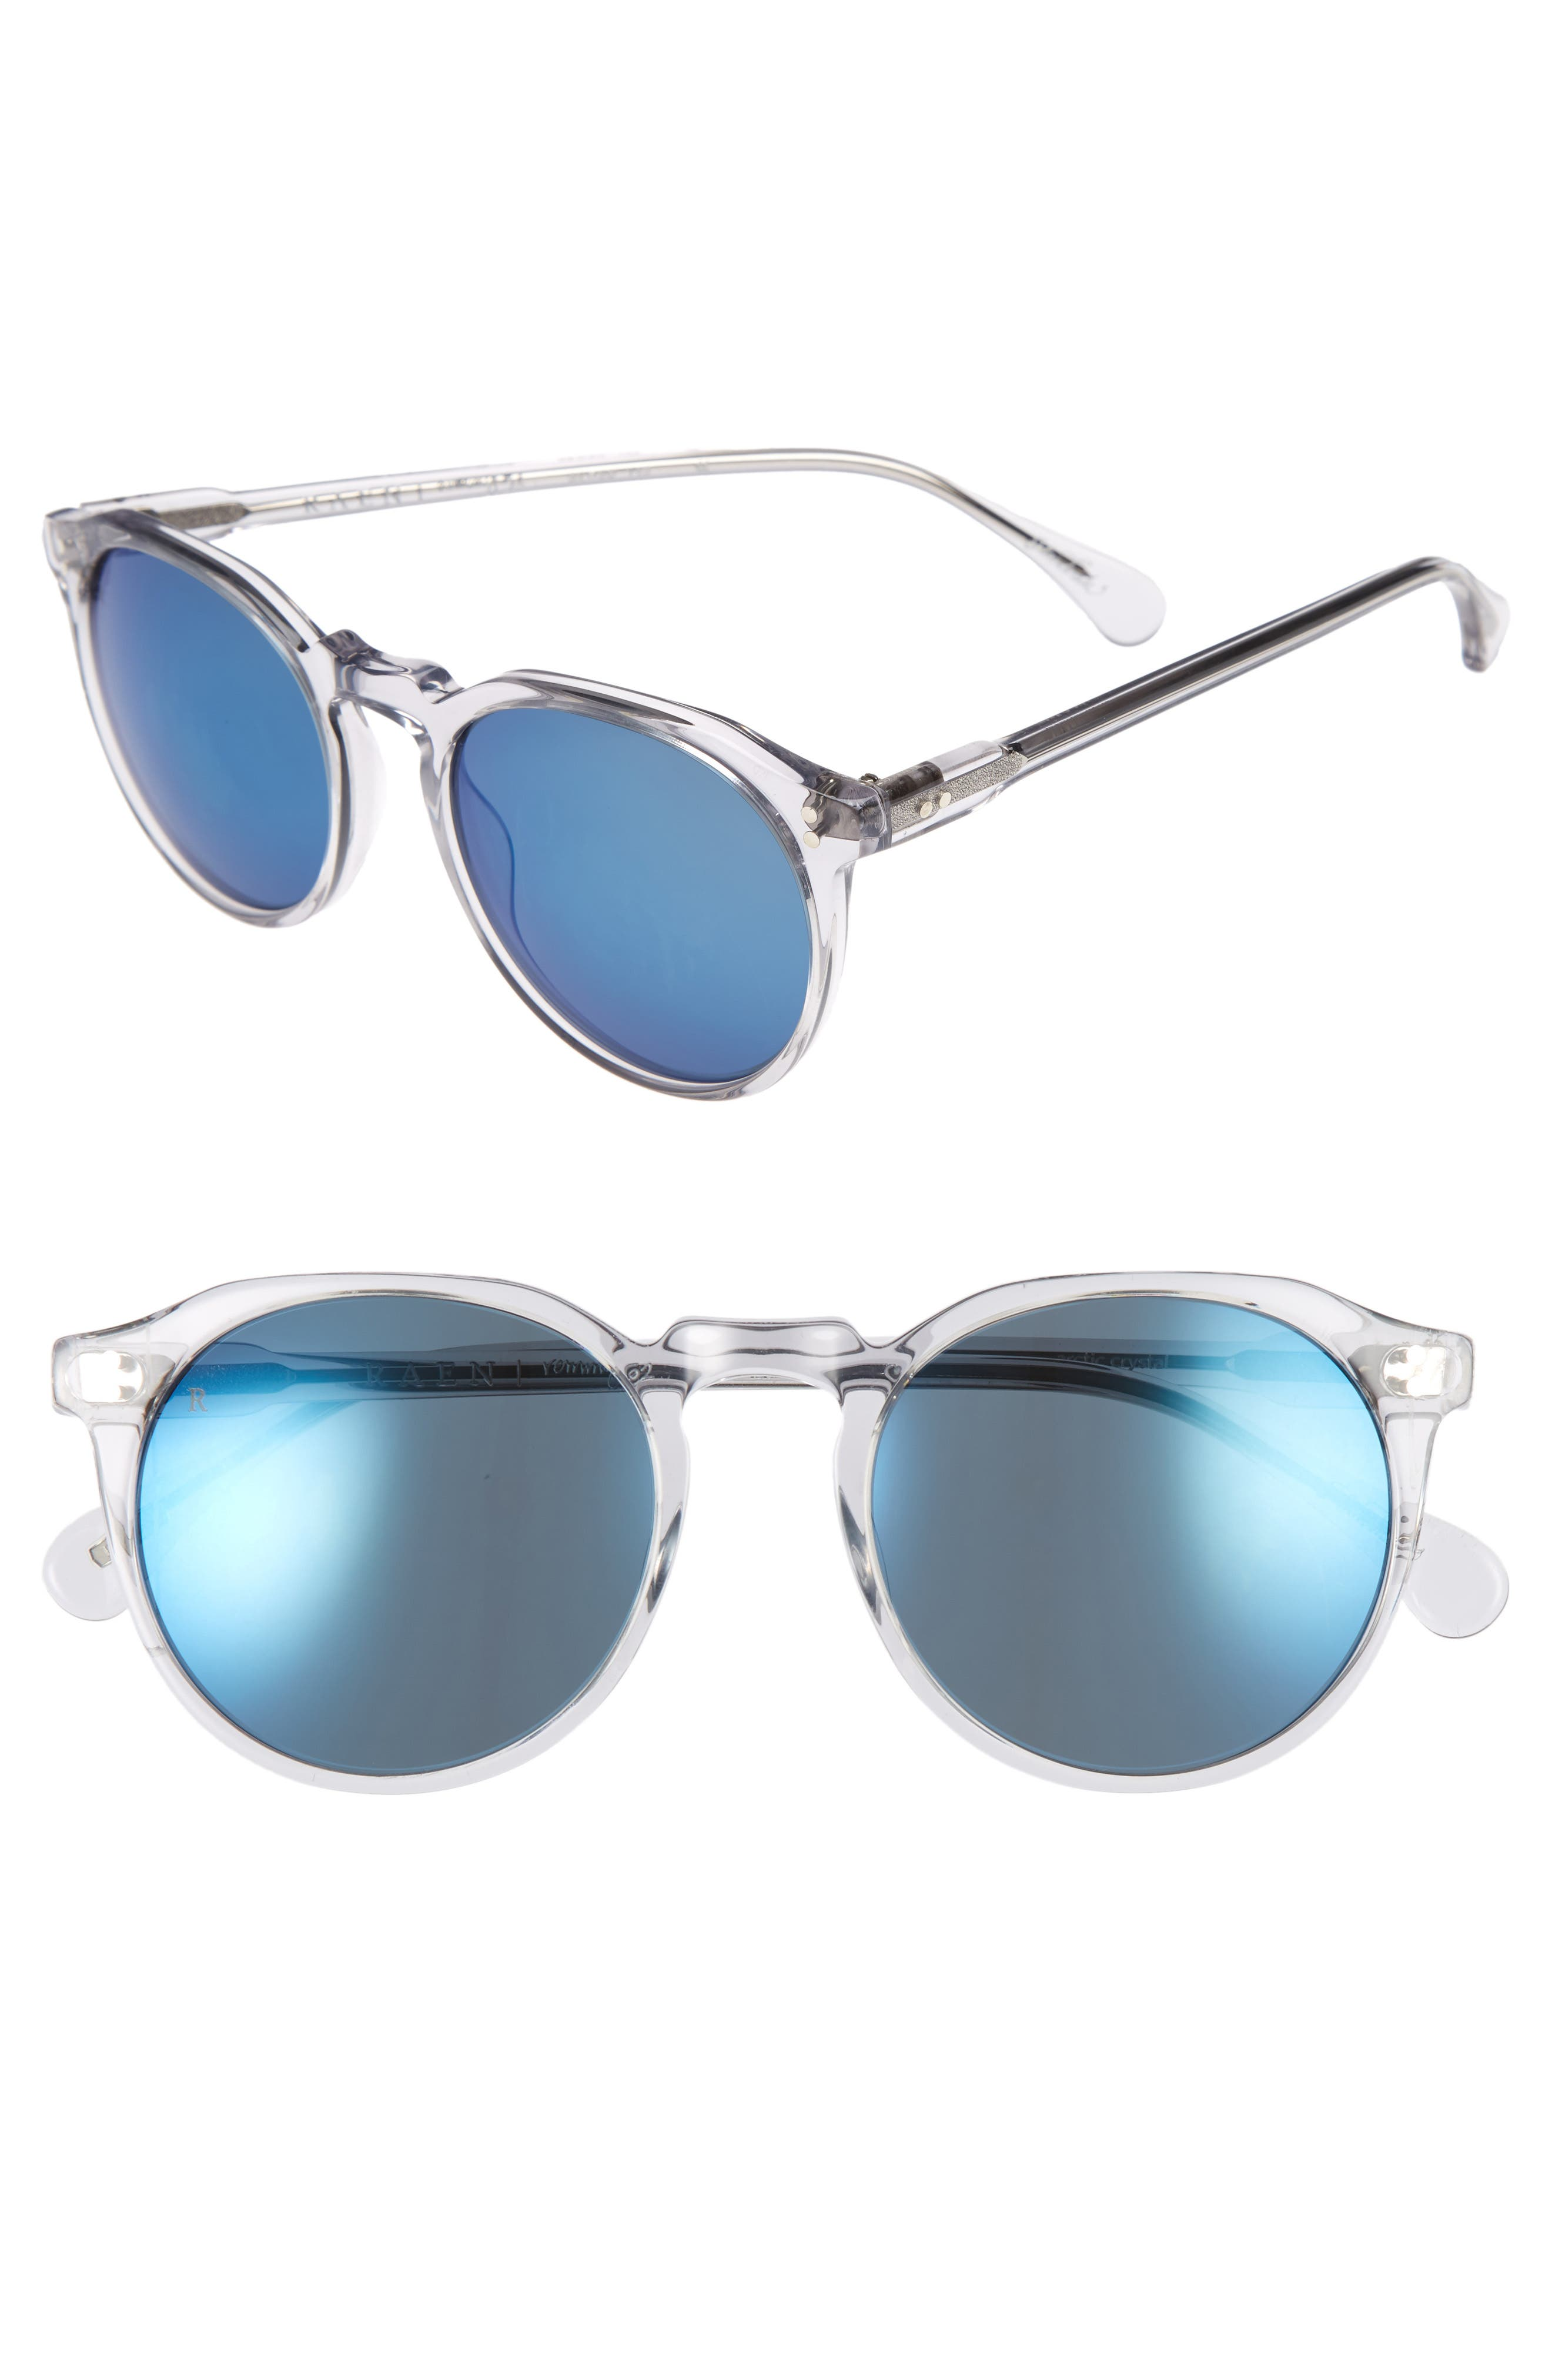 Remmy 52mm Sunglasses,                             Main thumbnail 1, color,                             Artic Crystal